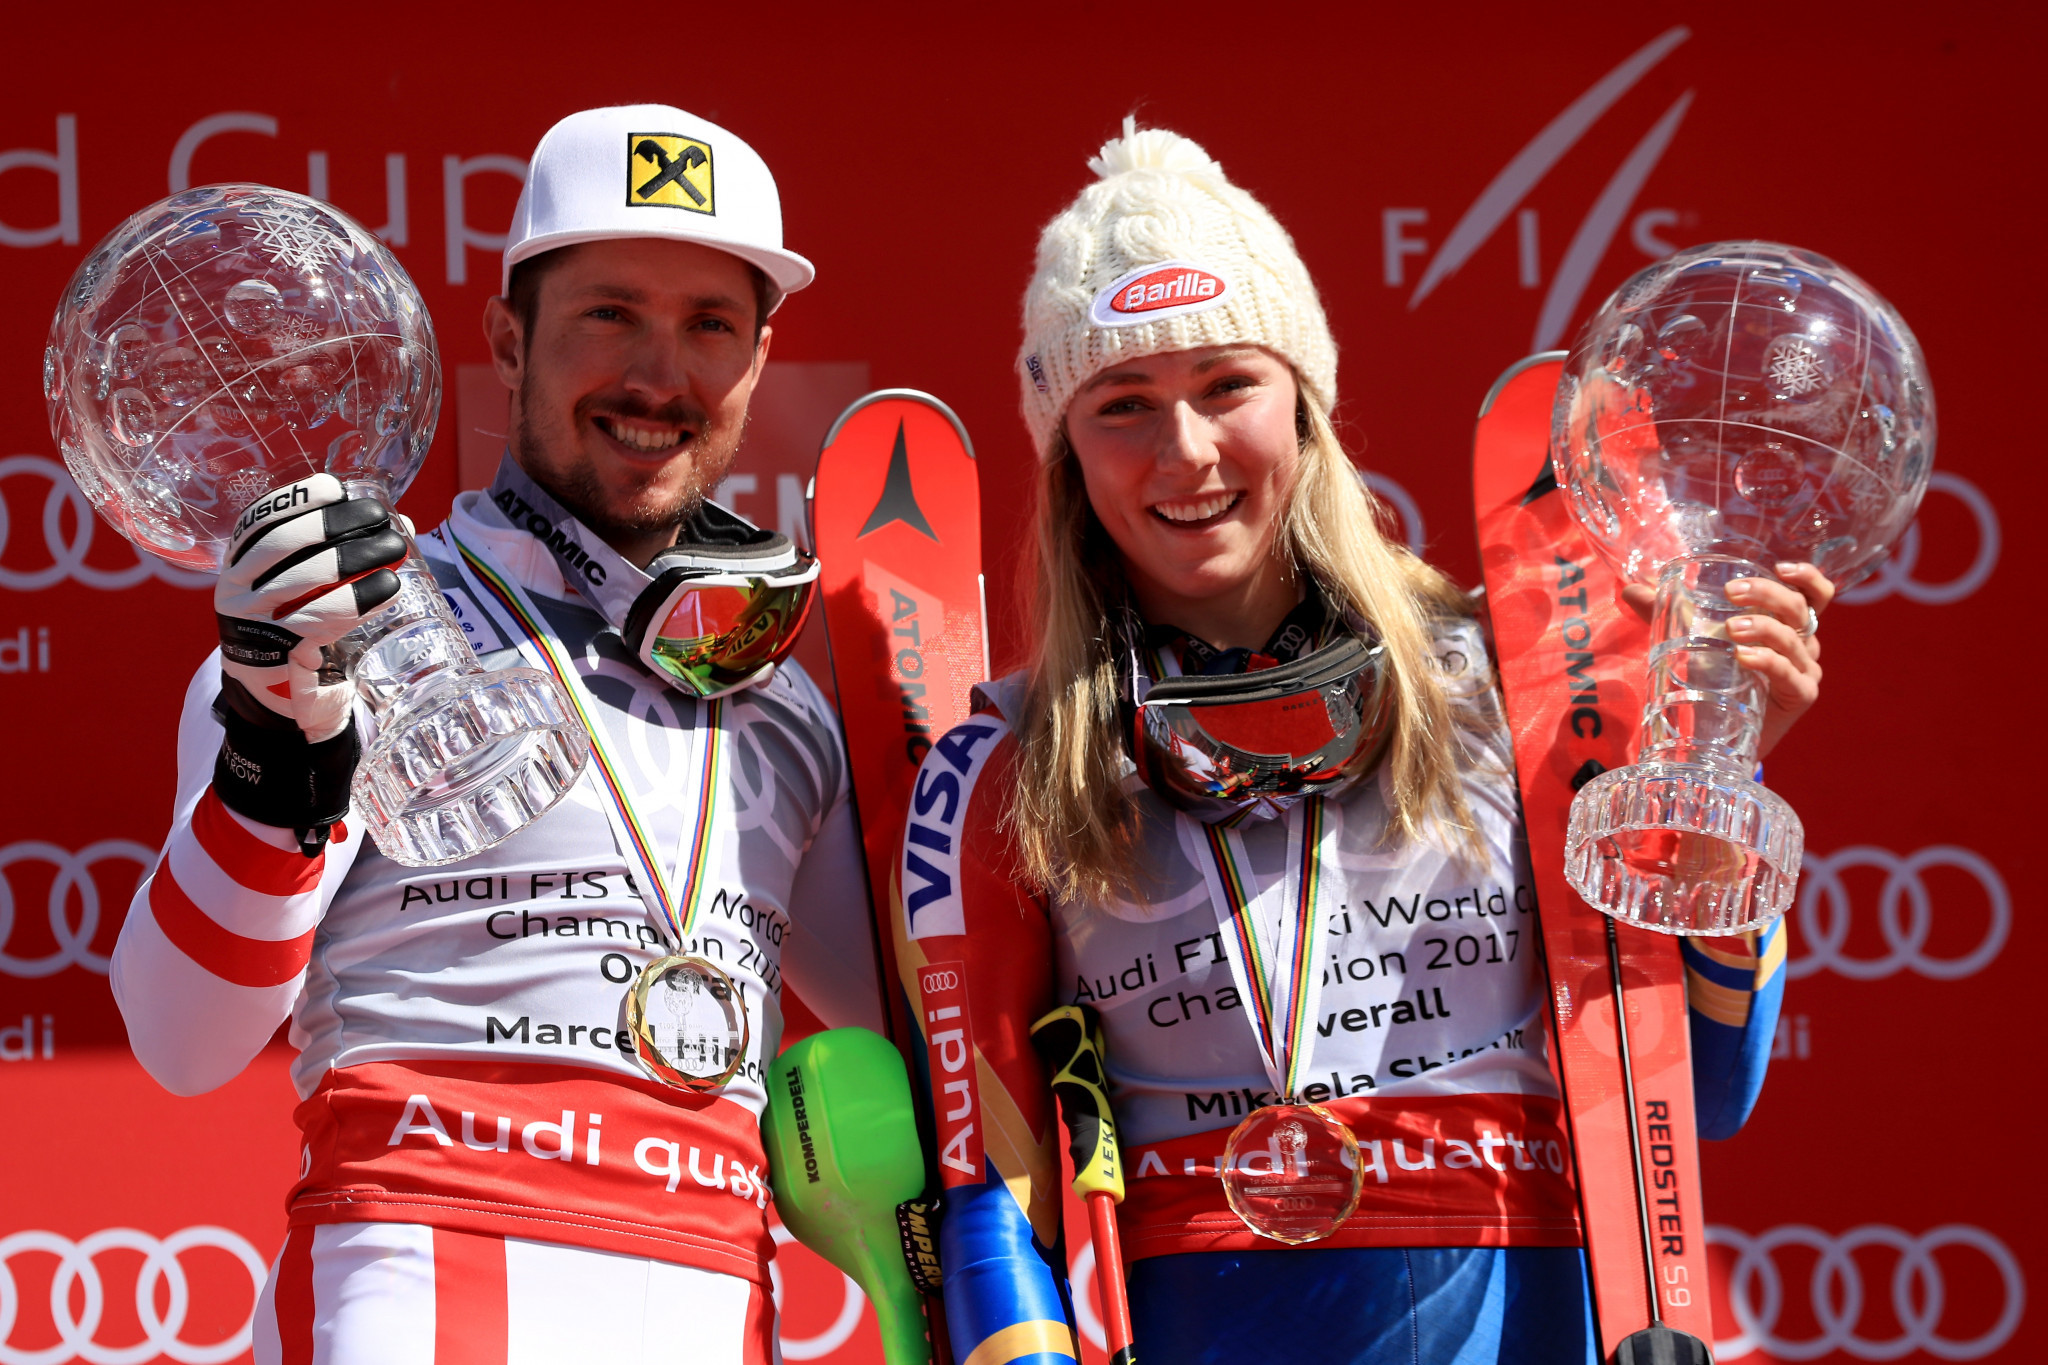 Hirscher and Shiffrin tipped to win FIS Alpine World Cups in Adelboden and Kranjska Gora